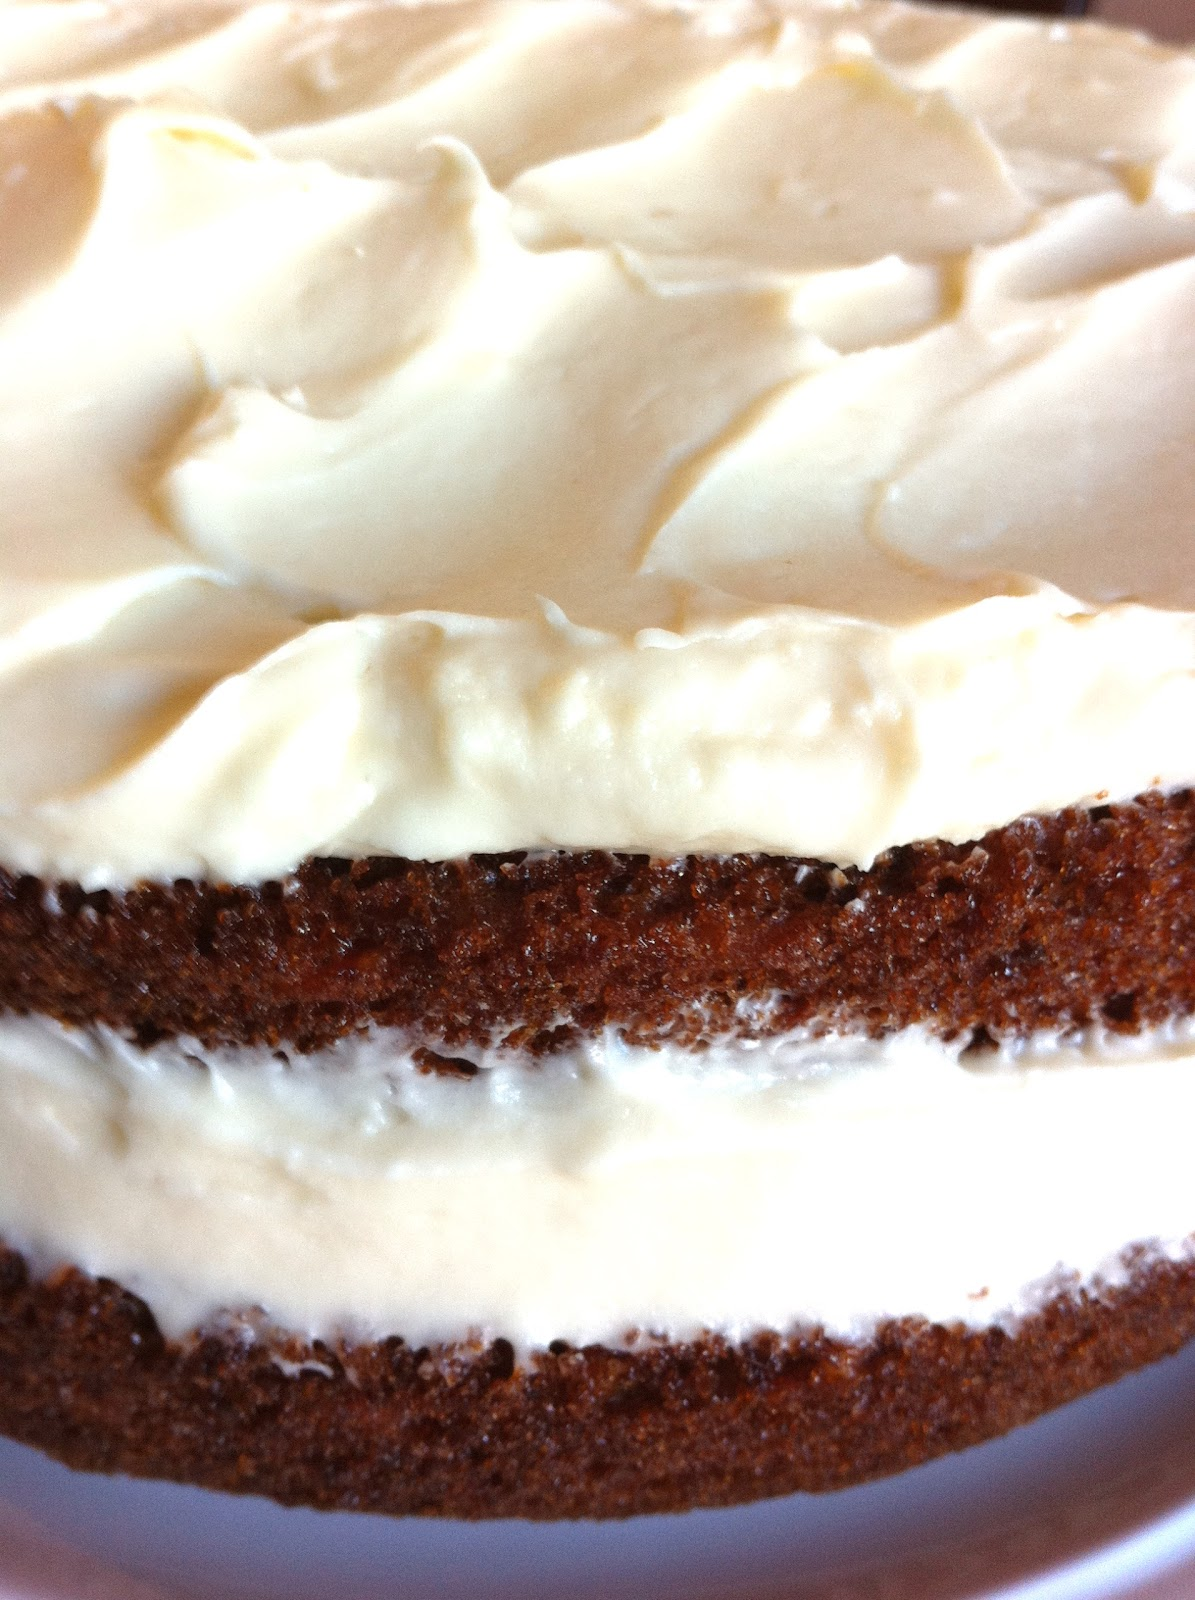 Cooking The Amazing: CREAM CHEESE ICING